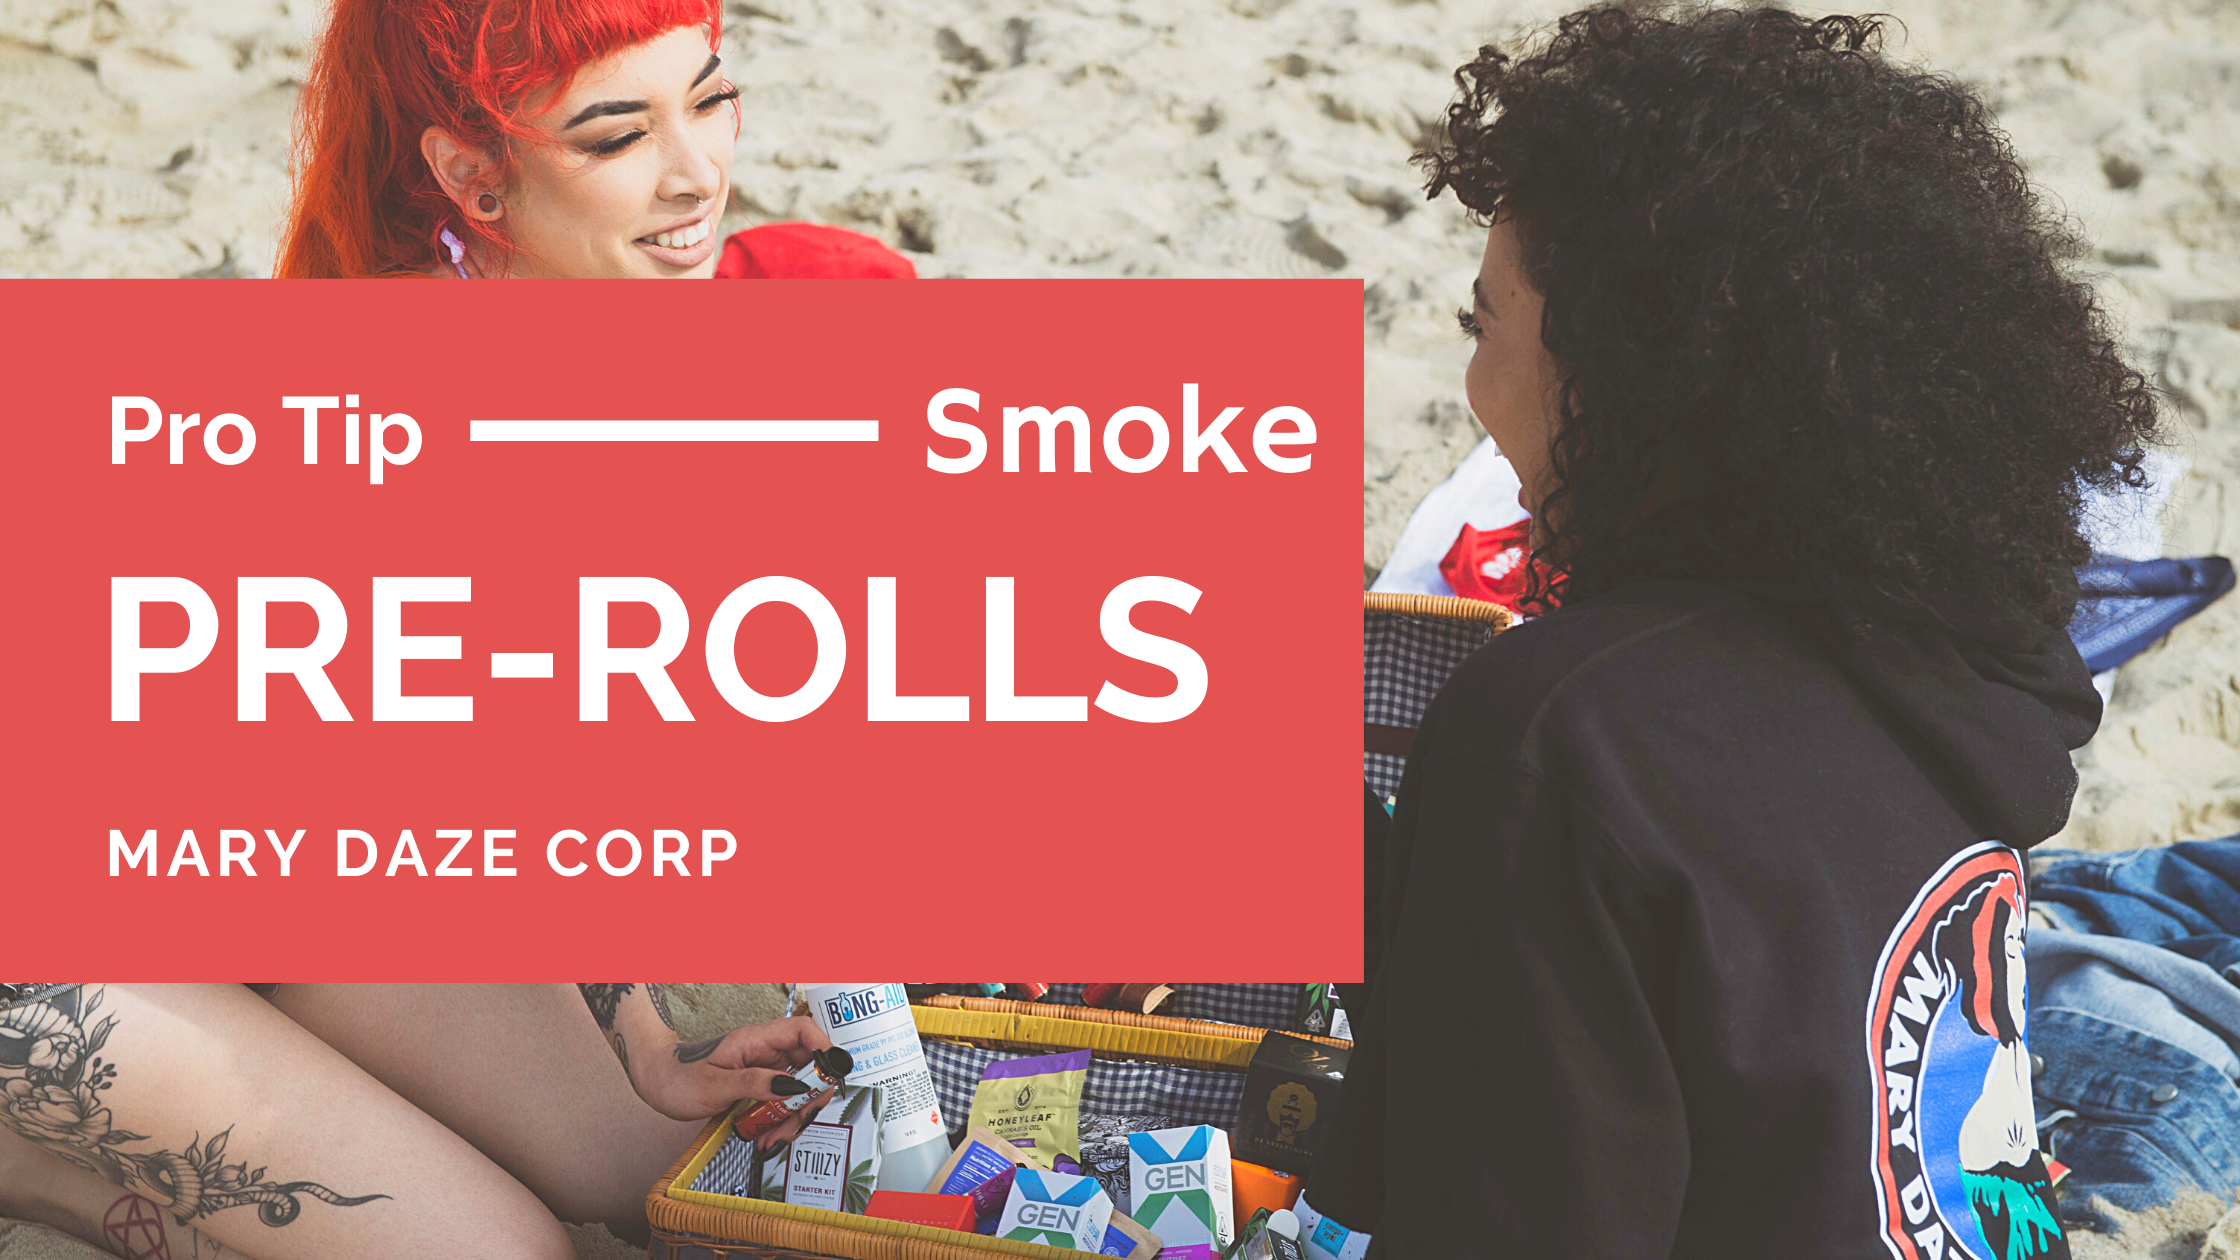 Mary Daze Pre-rolls are Coming Soon, Here's Why!